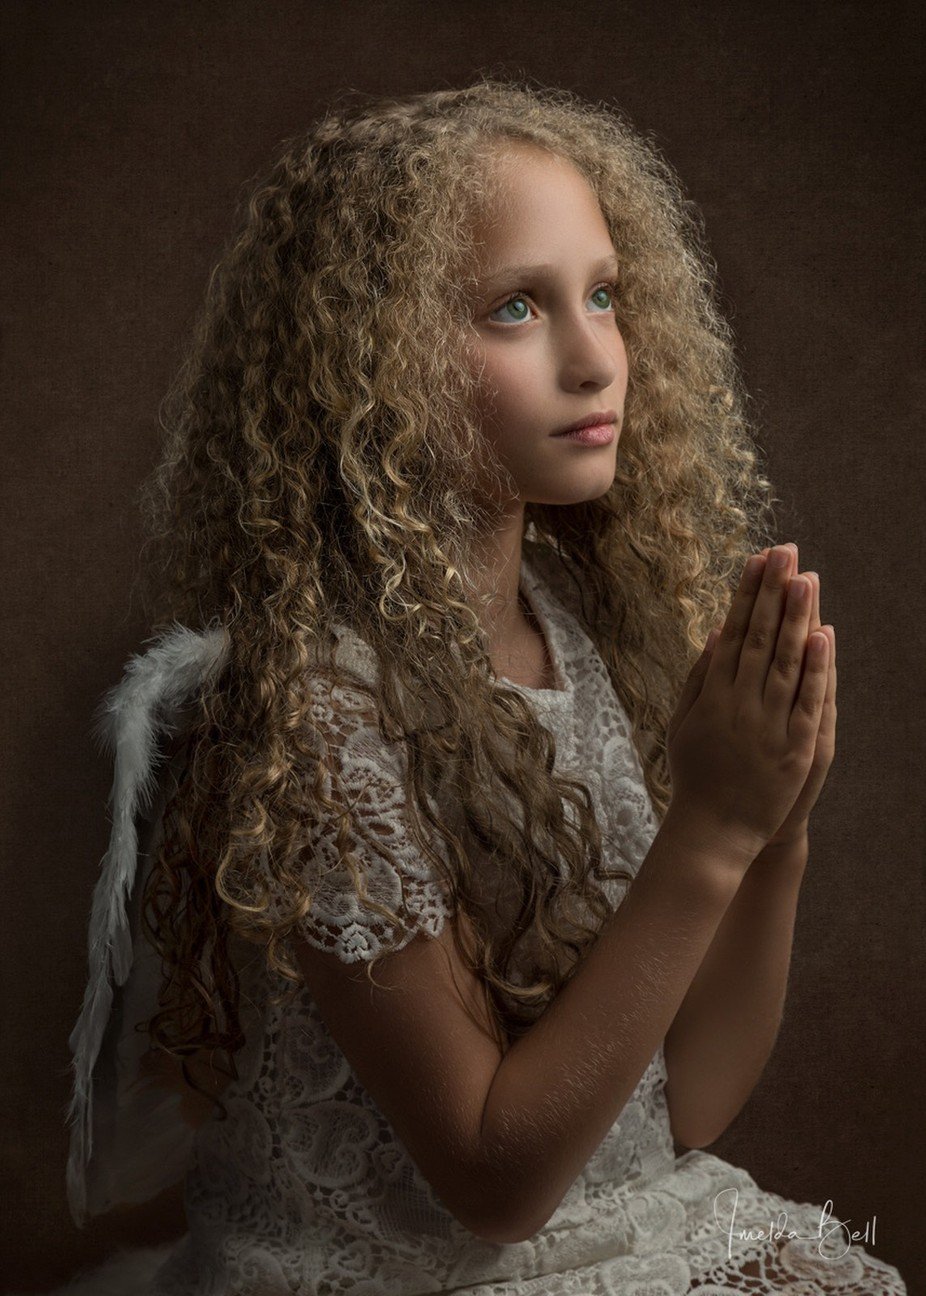 Angel Prayers by imeldabell - Curls Photo Contest